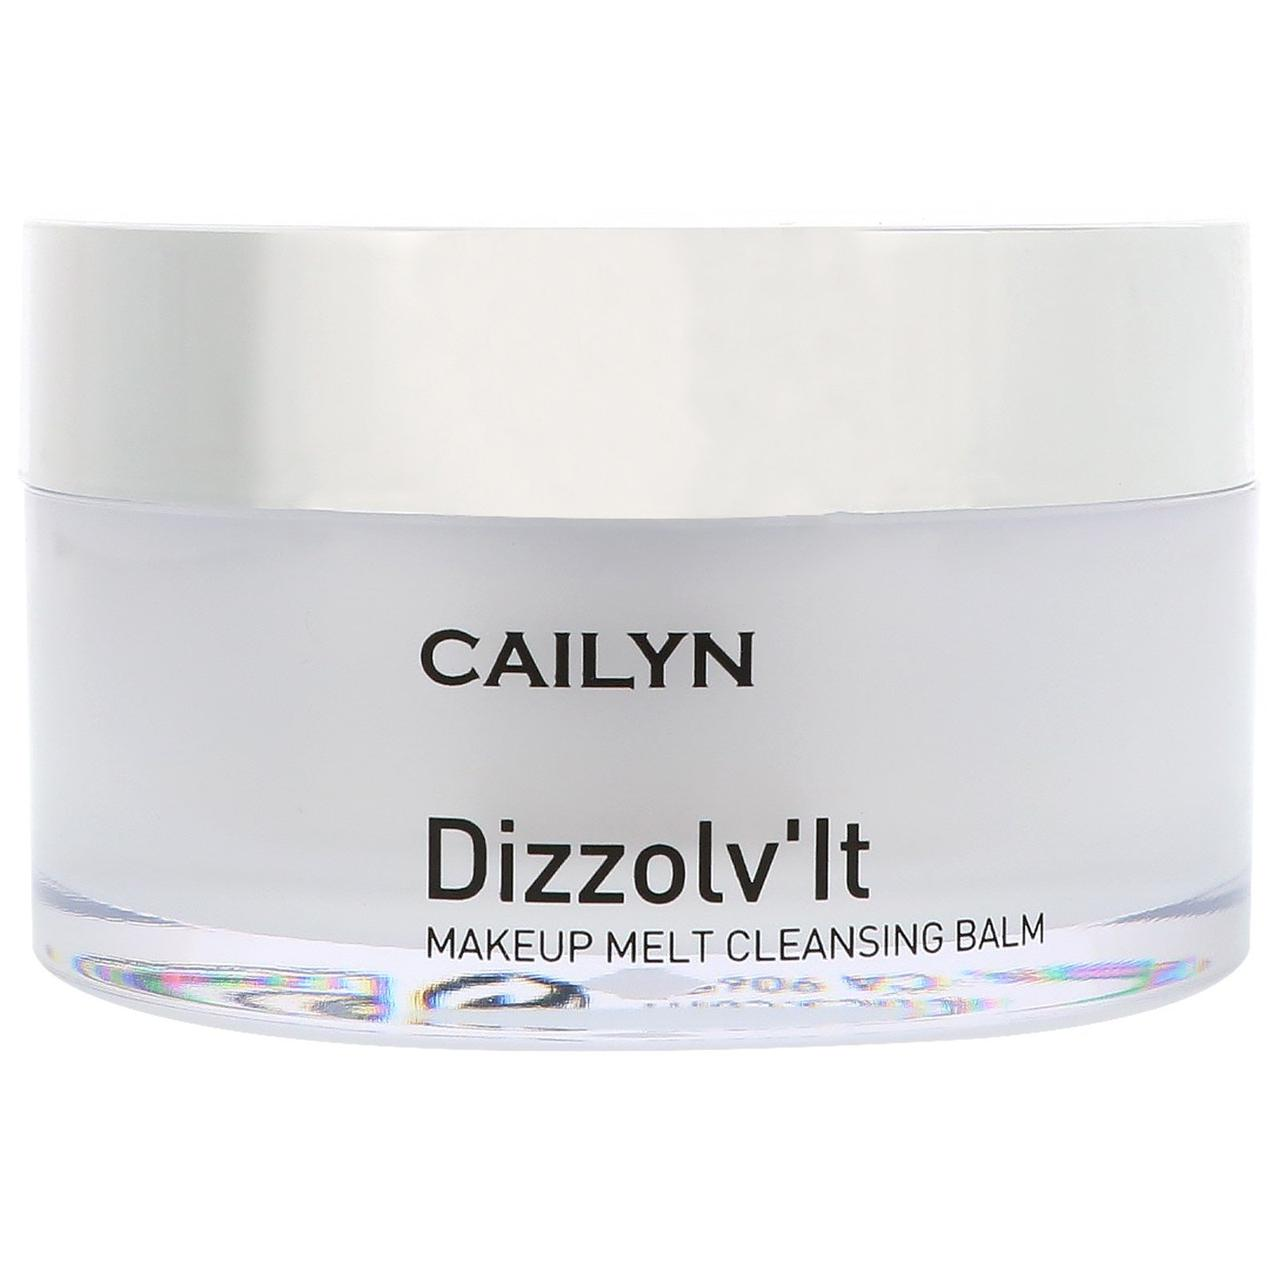 Cailyn, Dizzolv'It, Makeup Melt Cleansing Balm, 50 g (1.7 oz)